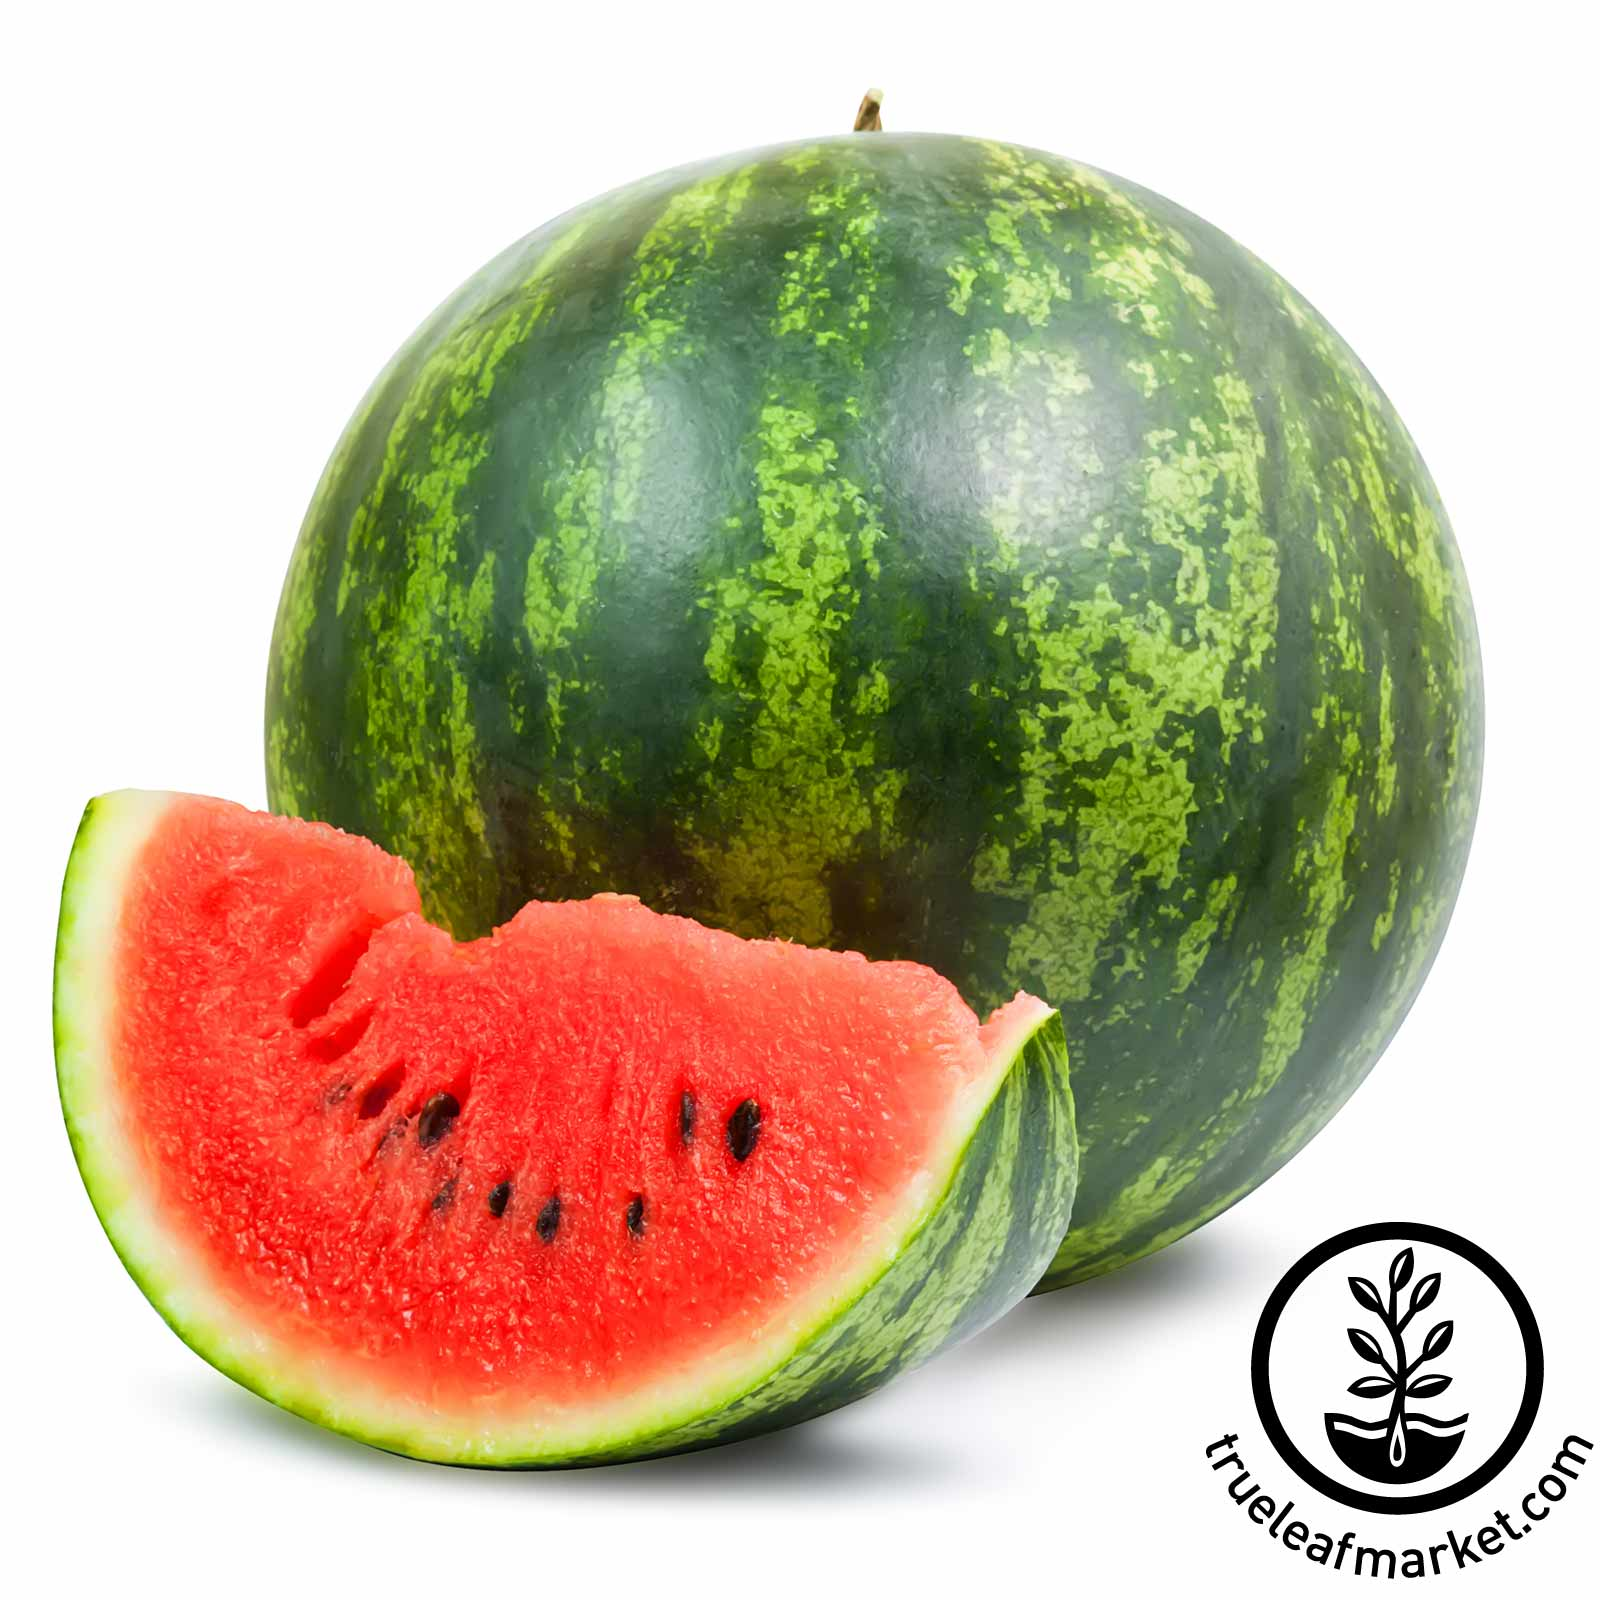 Watermelon Shiny Boy Hybrid Seed